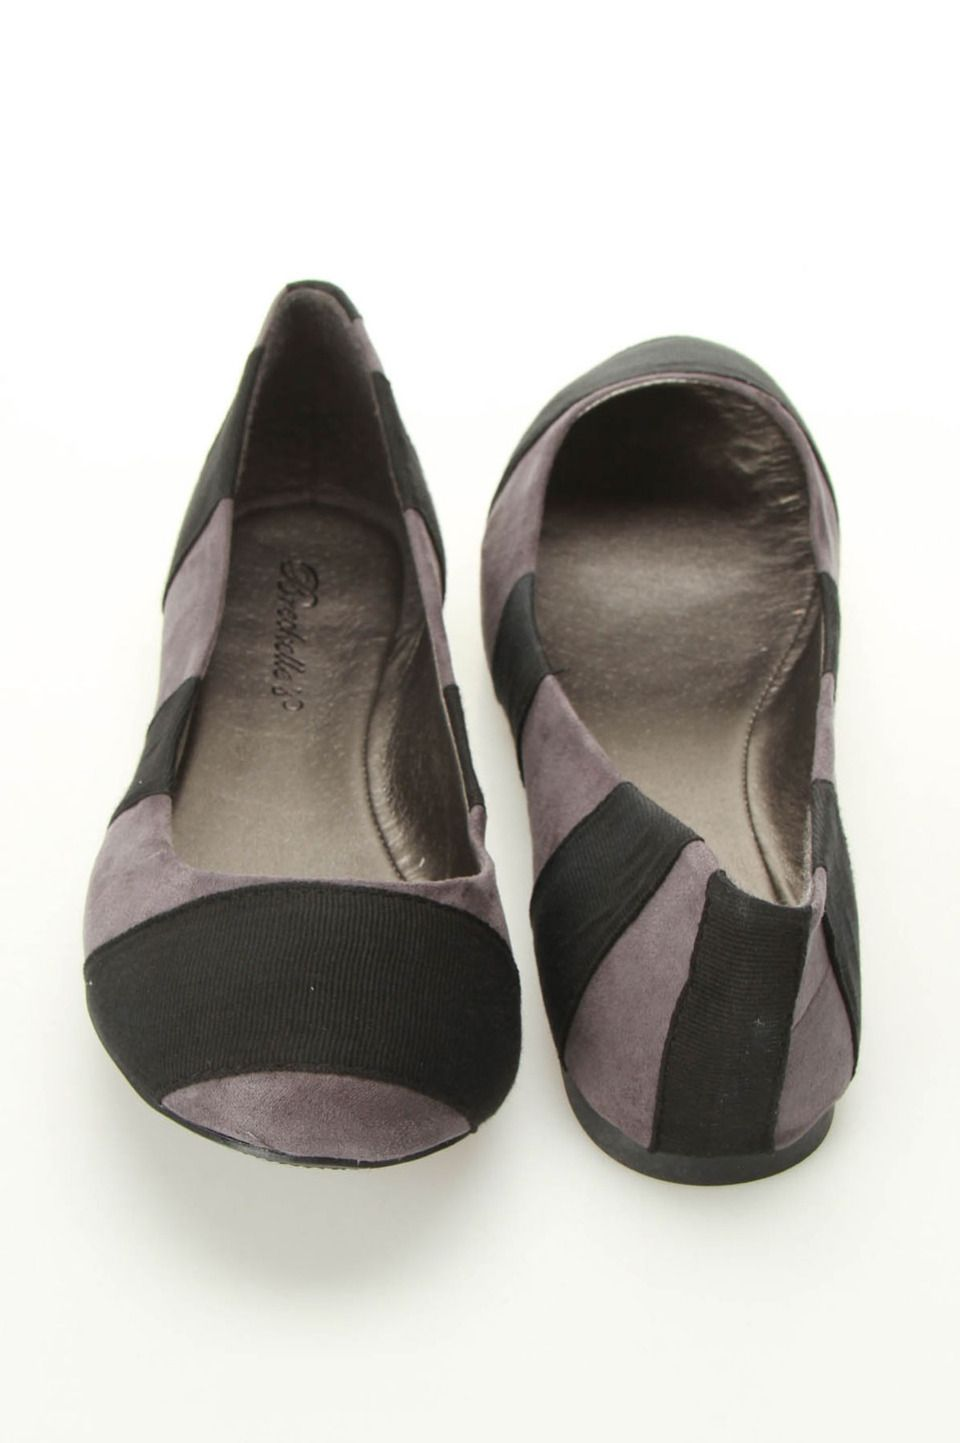 Erika 11 Striped Ballet Flats In Black - Beyond the Rack